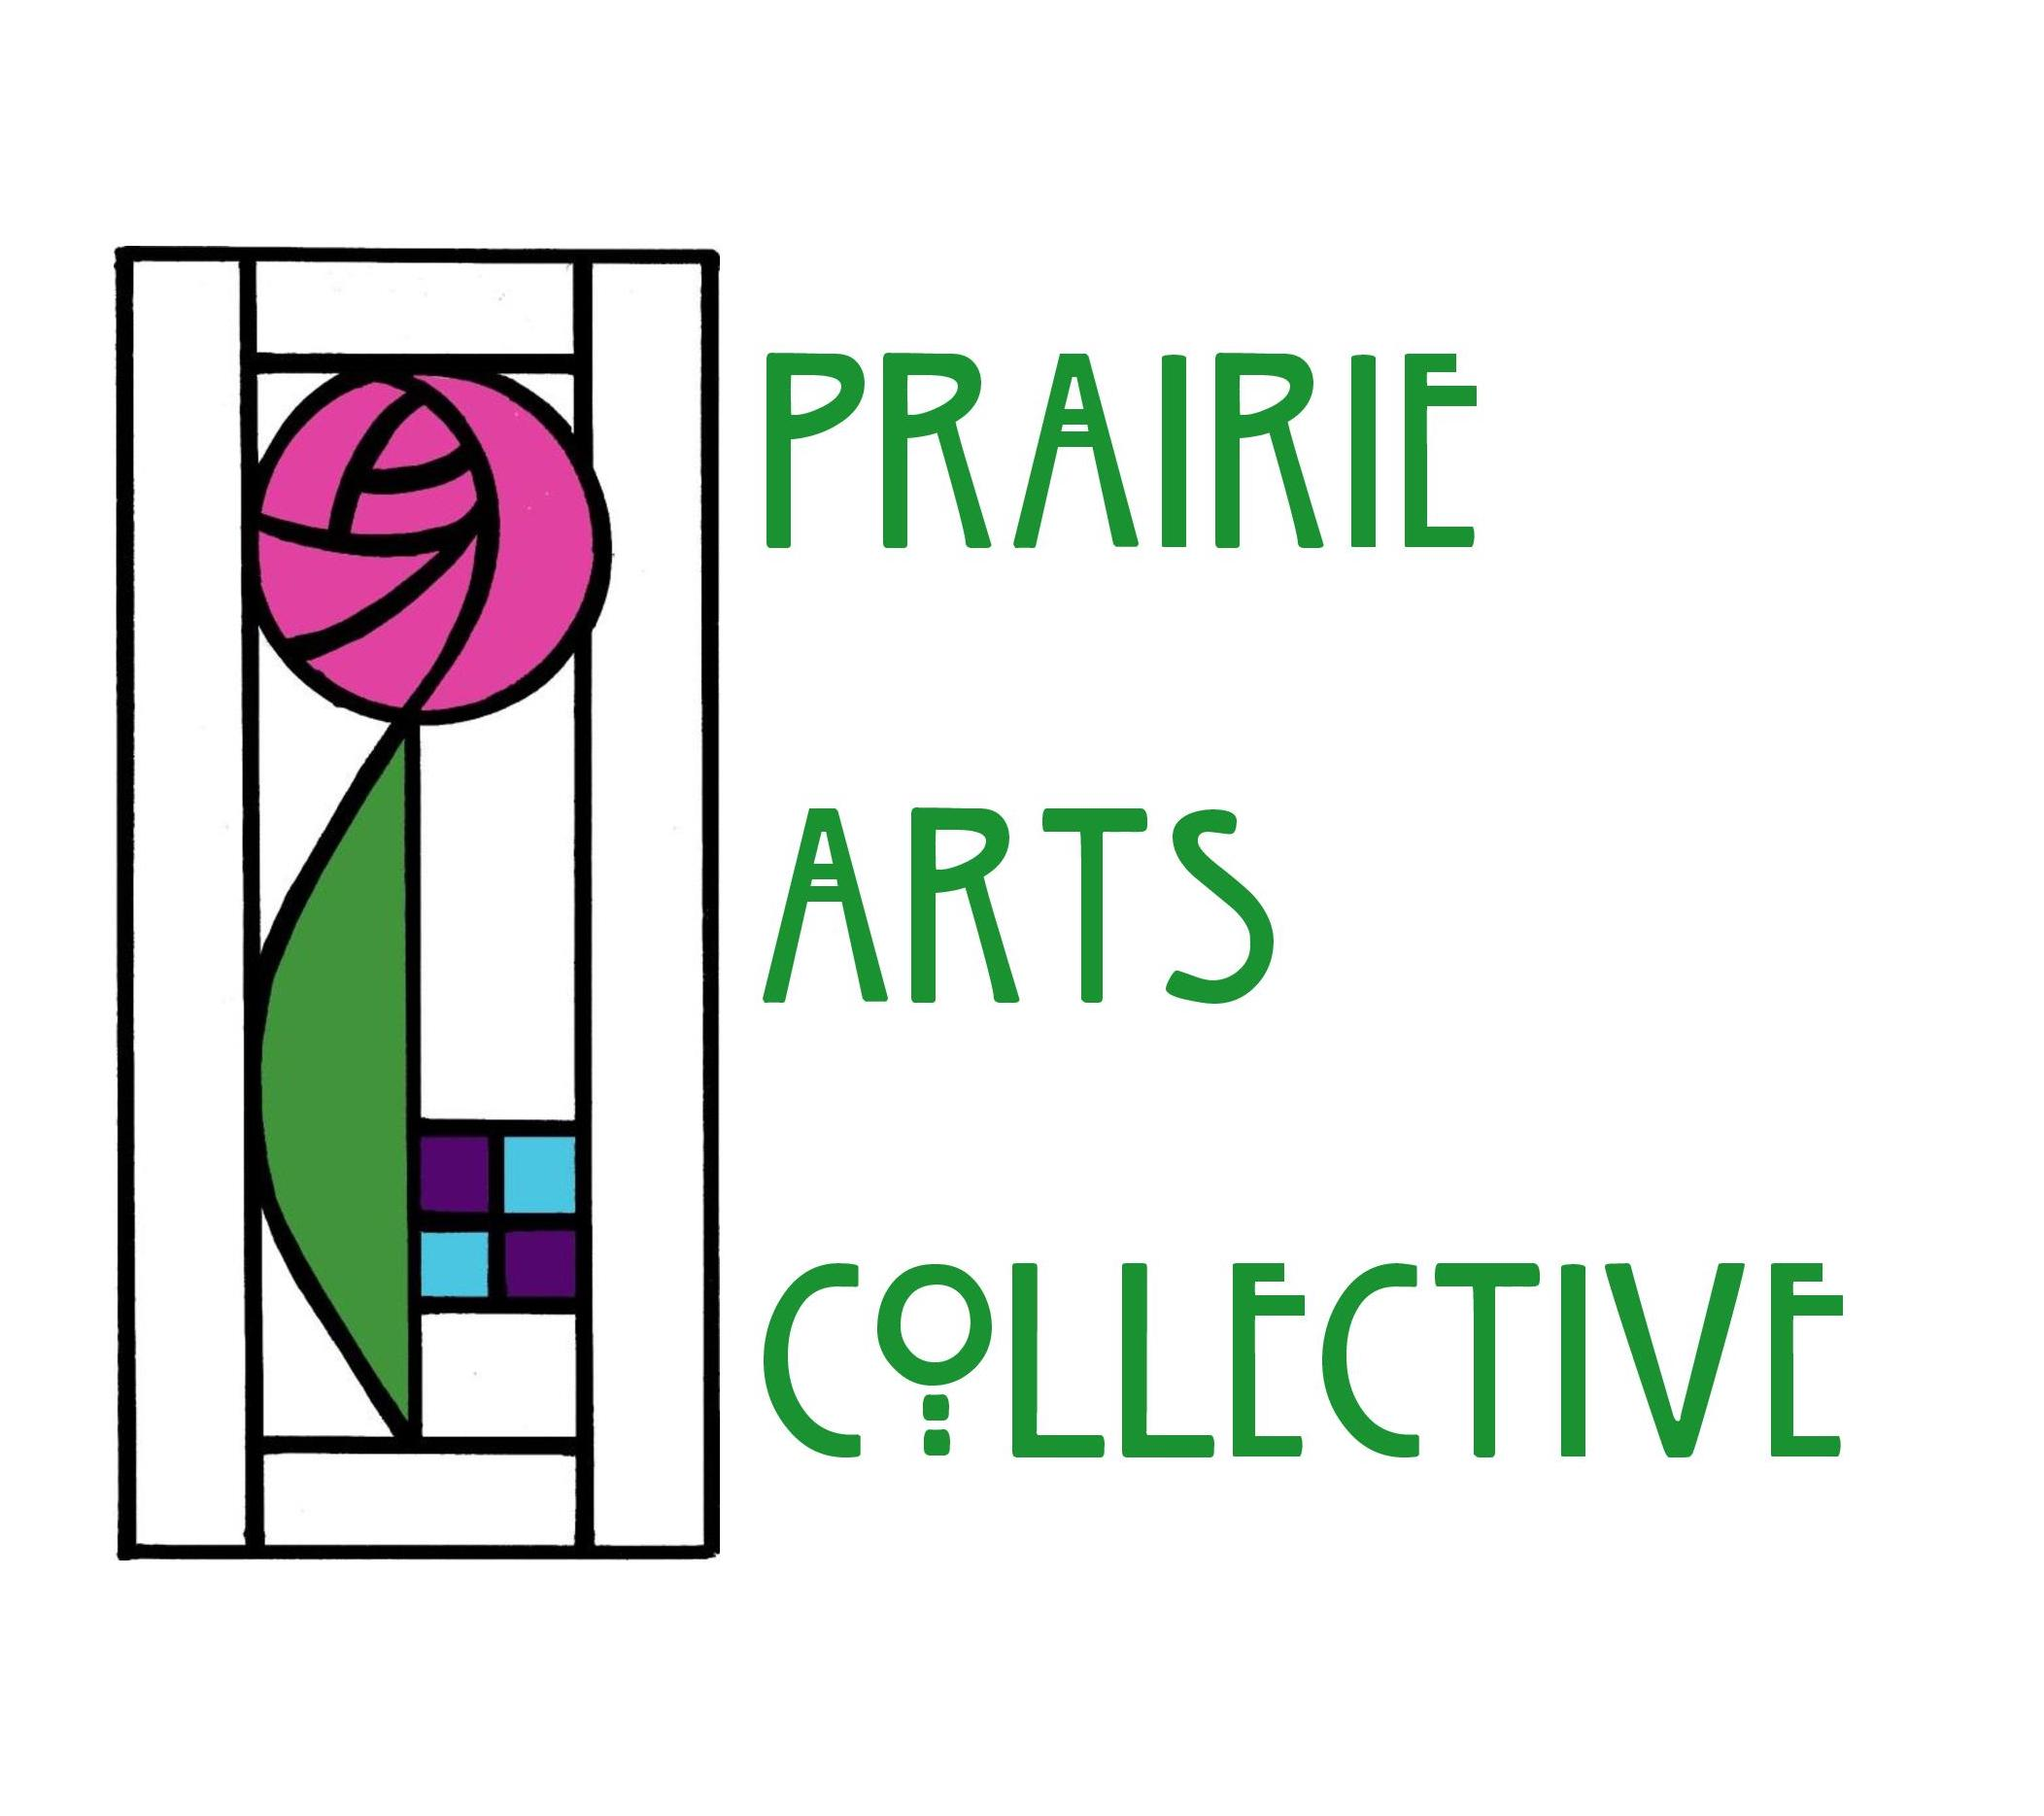 PRAIRIE ARTS COLLECTIVE